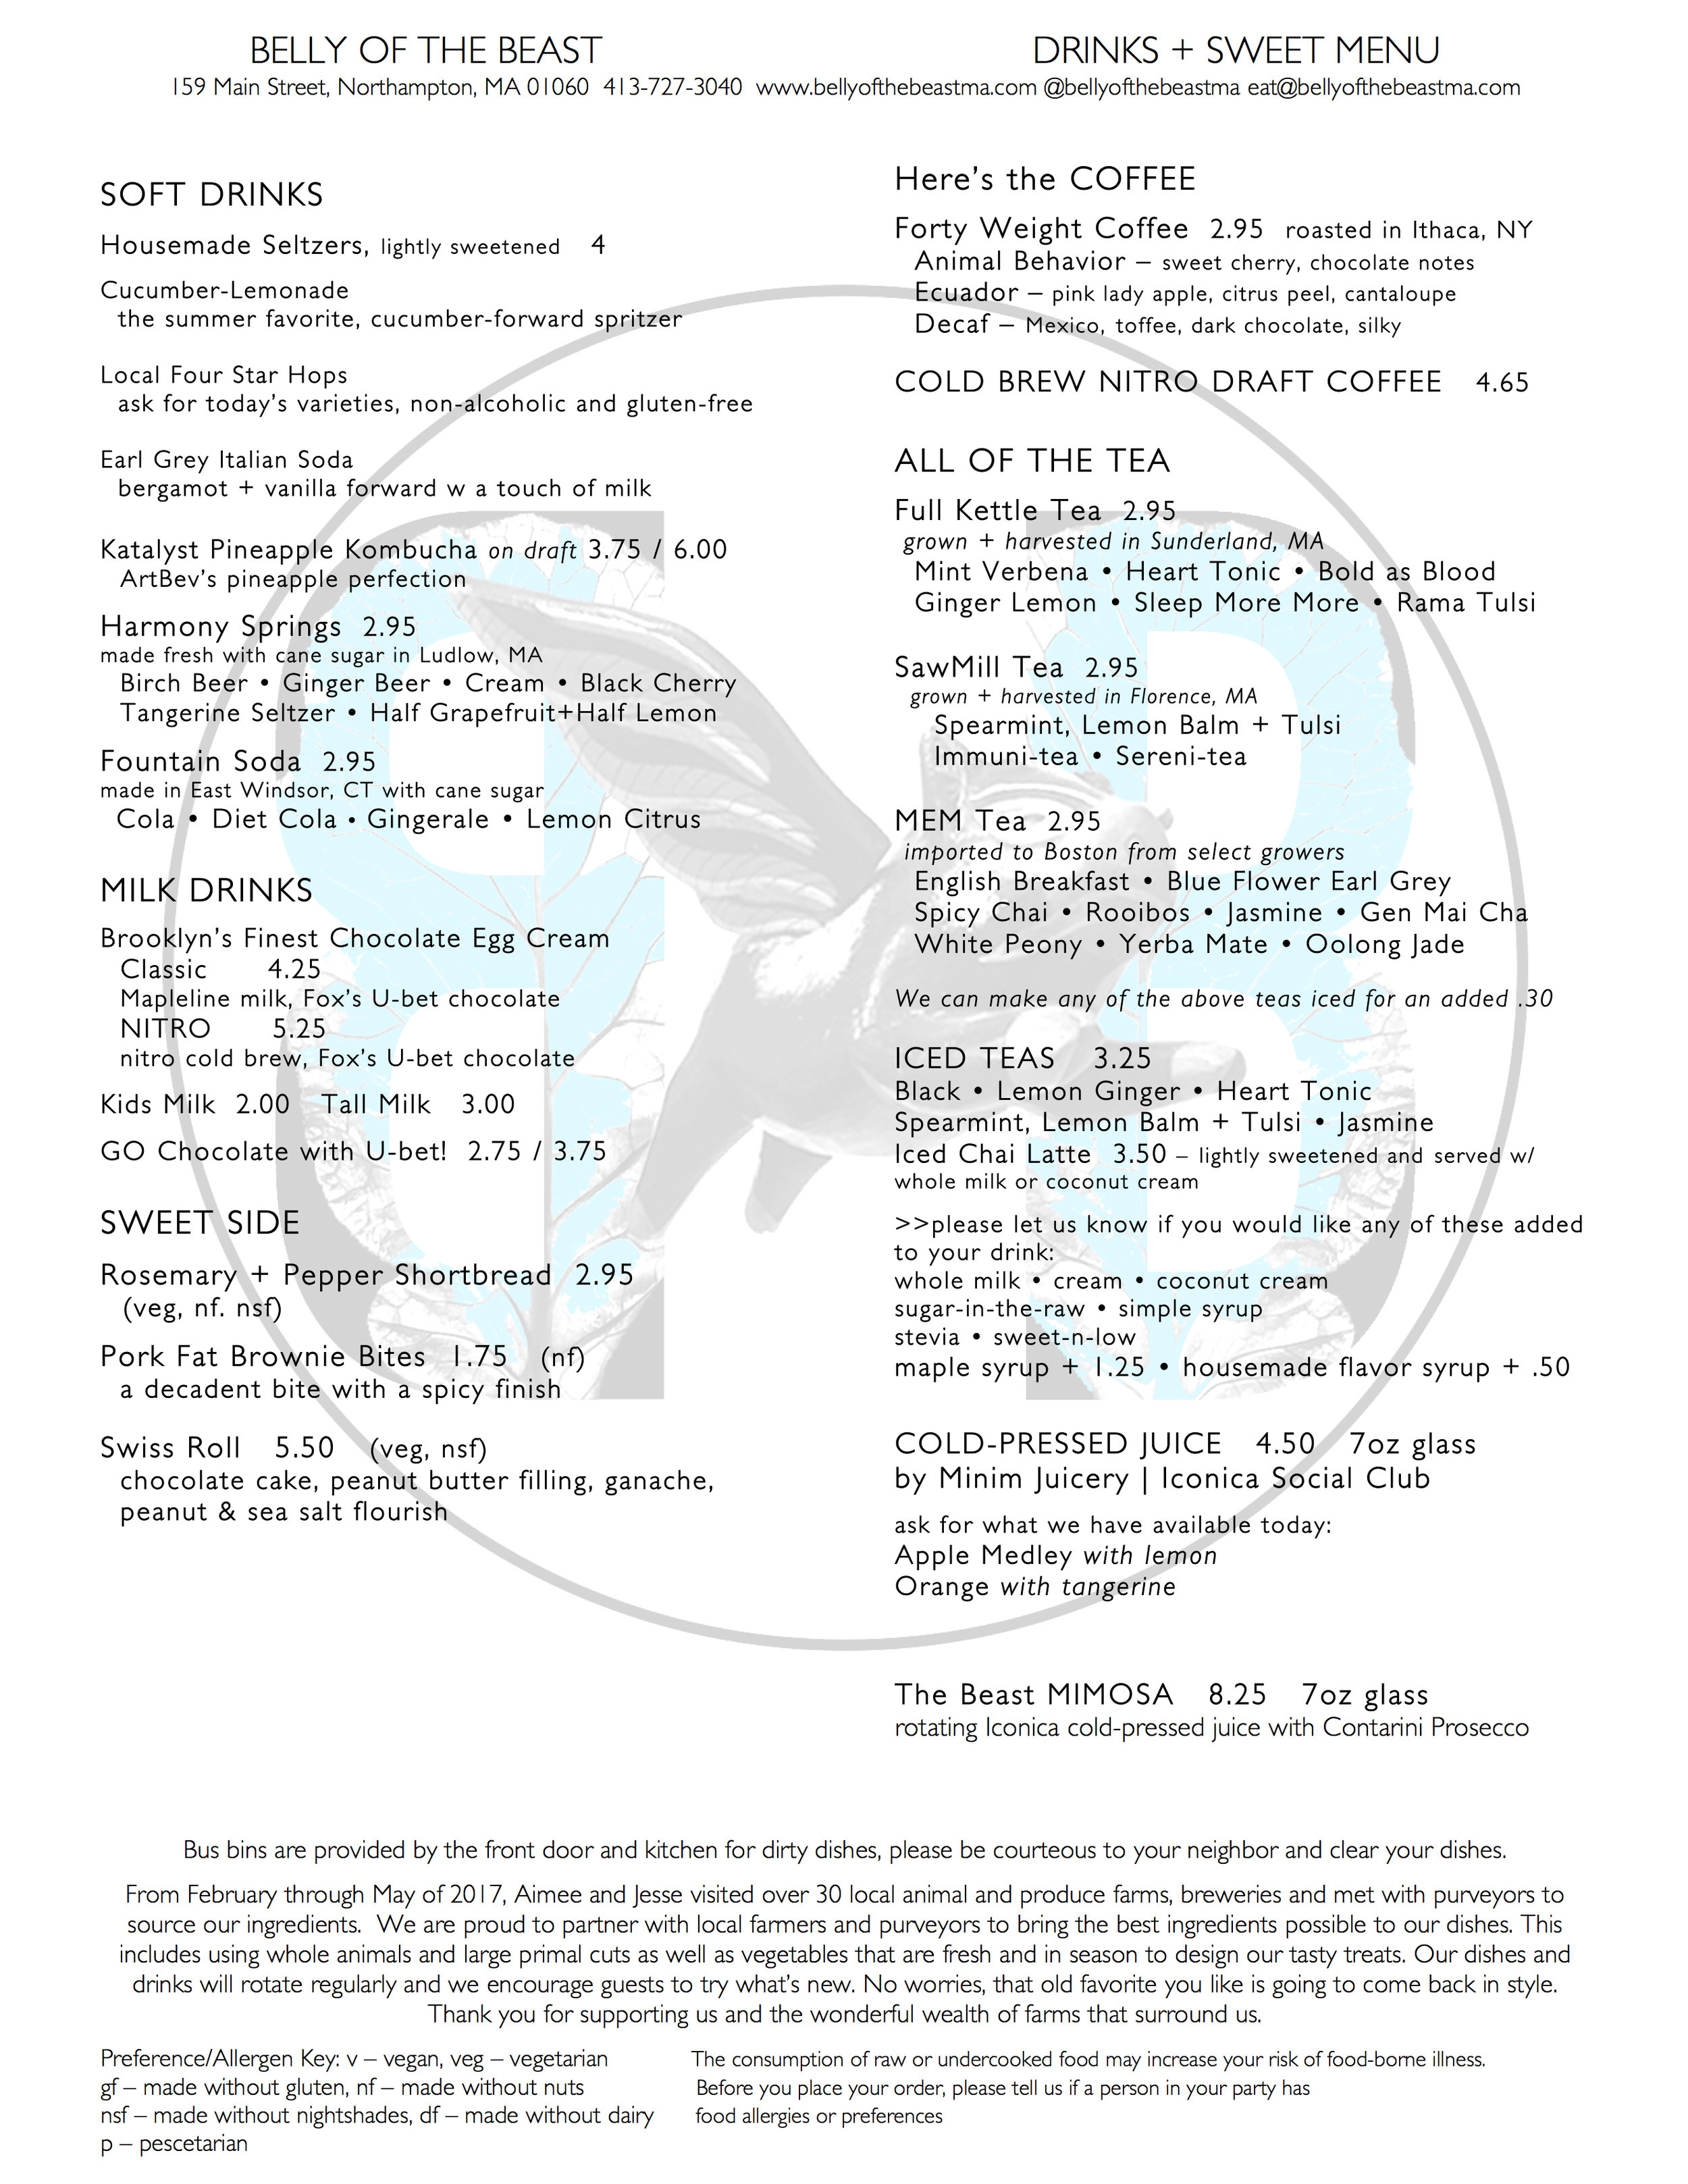 web 1 Drinks Menu 07_05_18.jpg